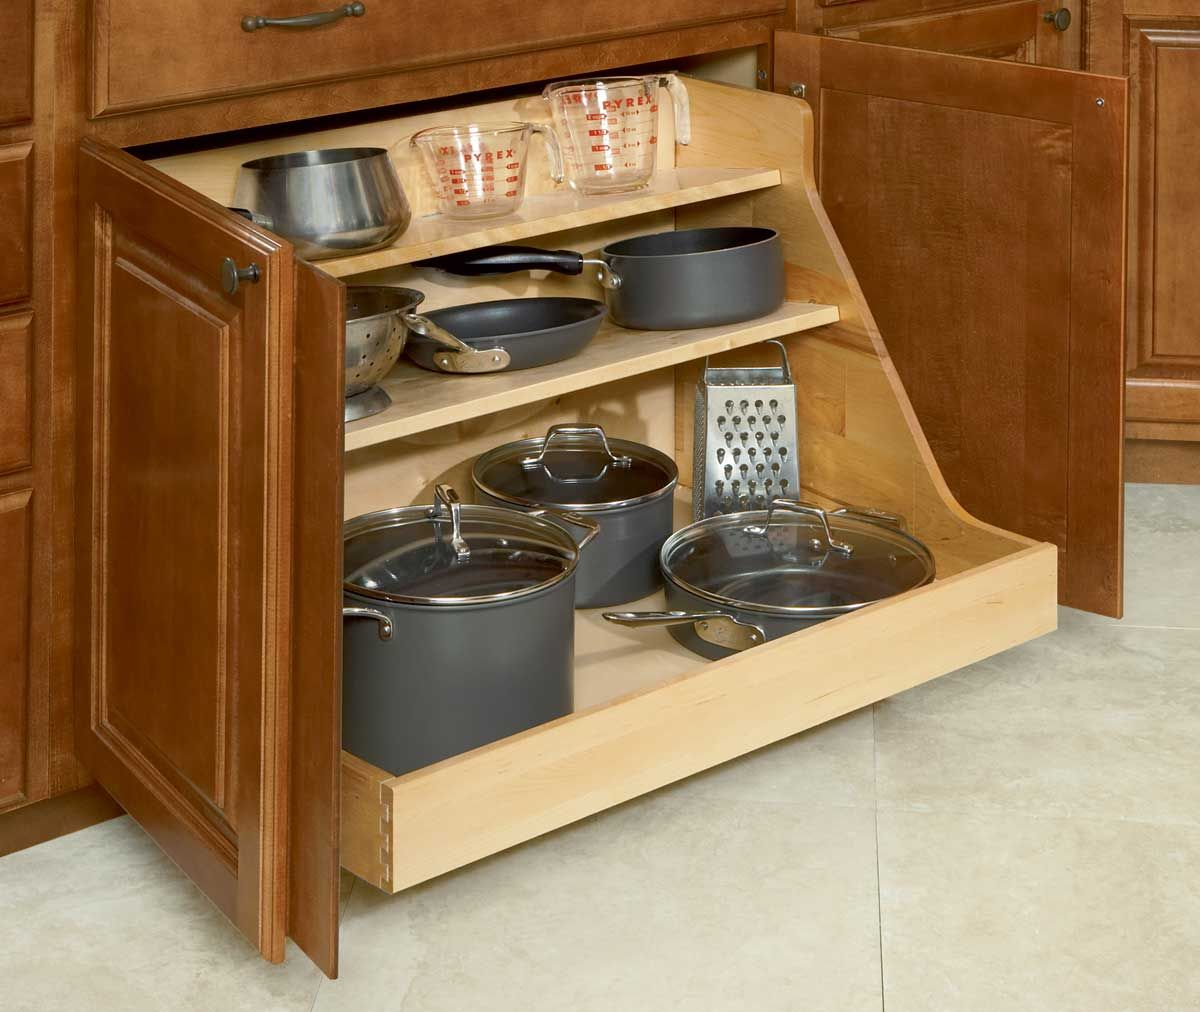 Kitchen Shelf Organiser: Pot And Pan Organizer